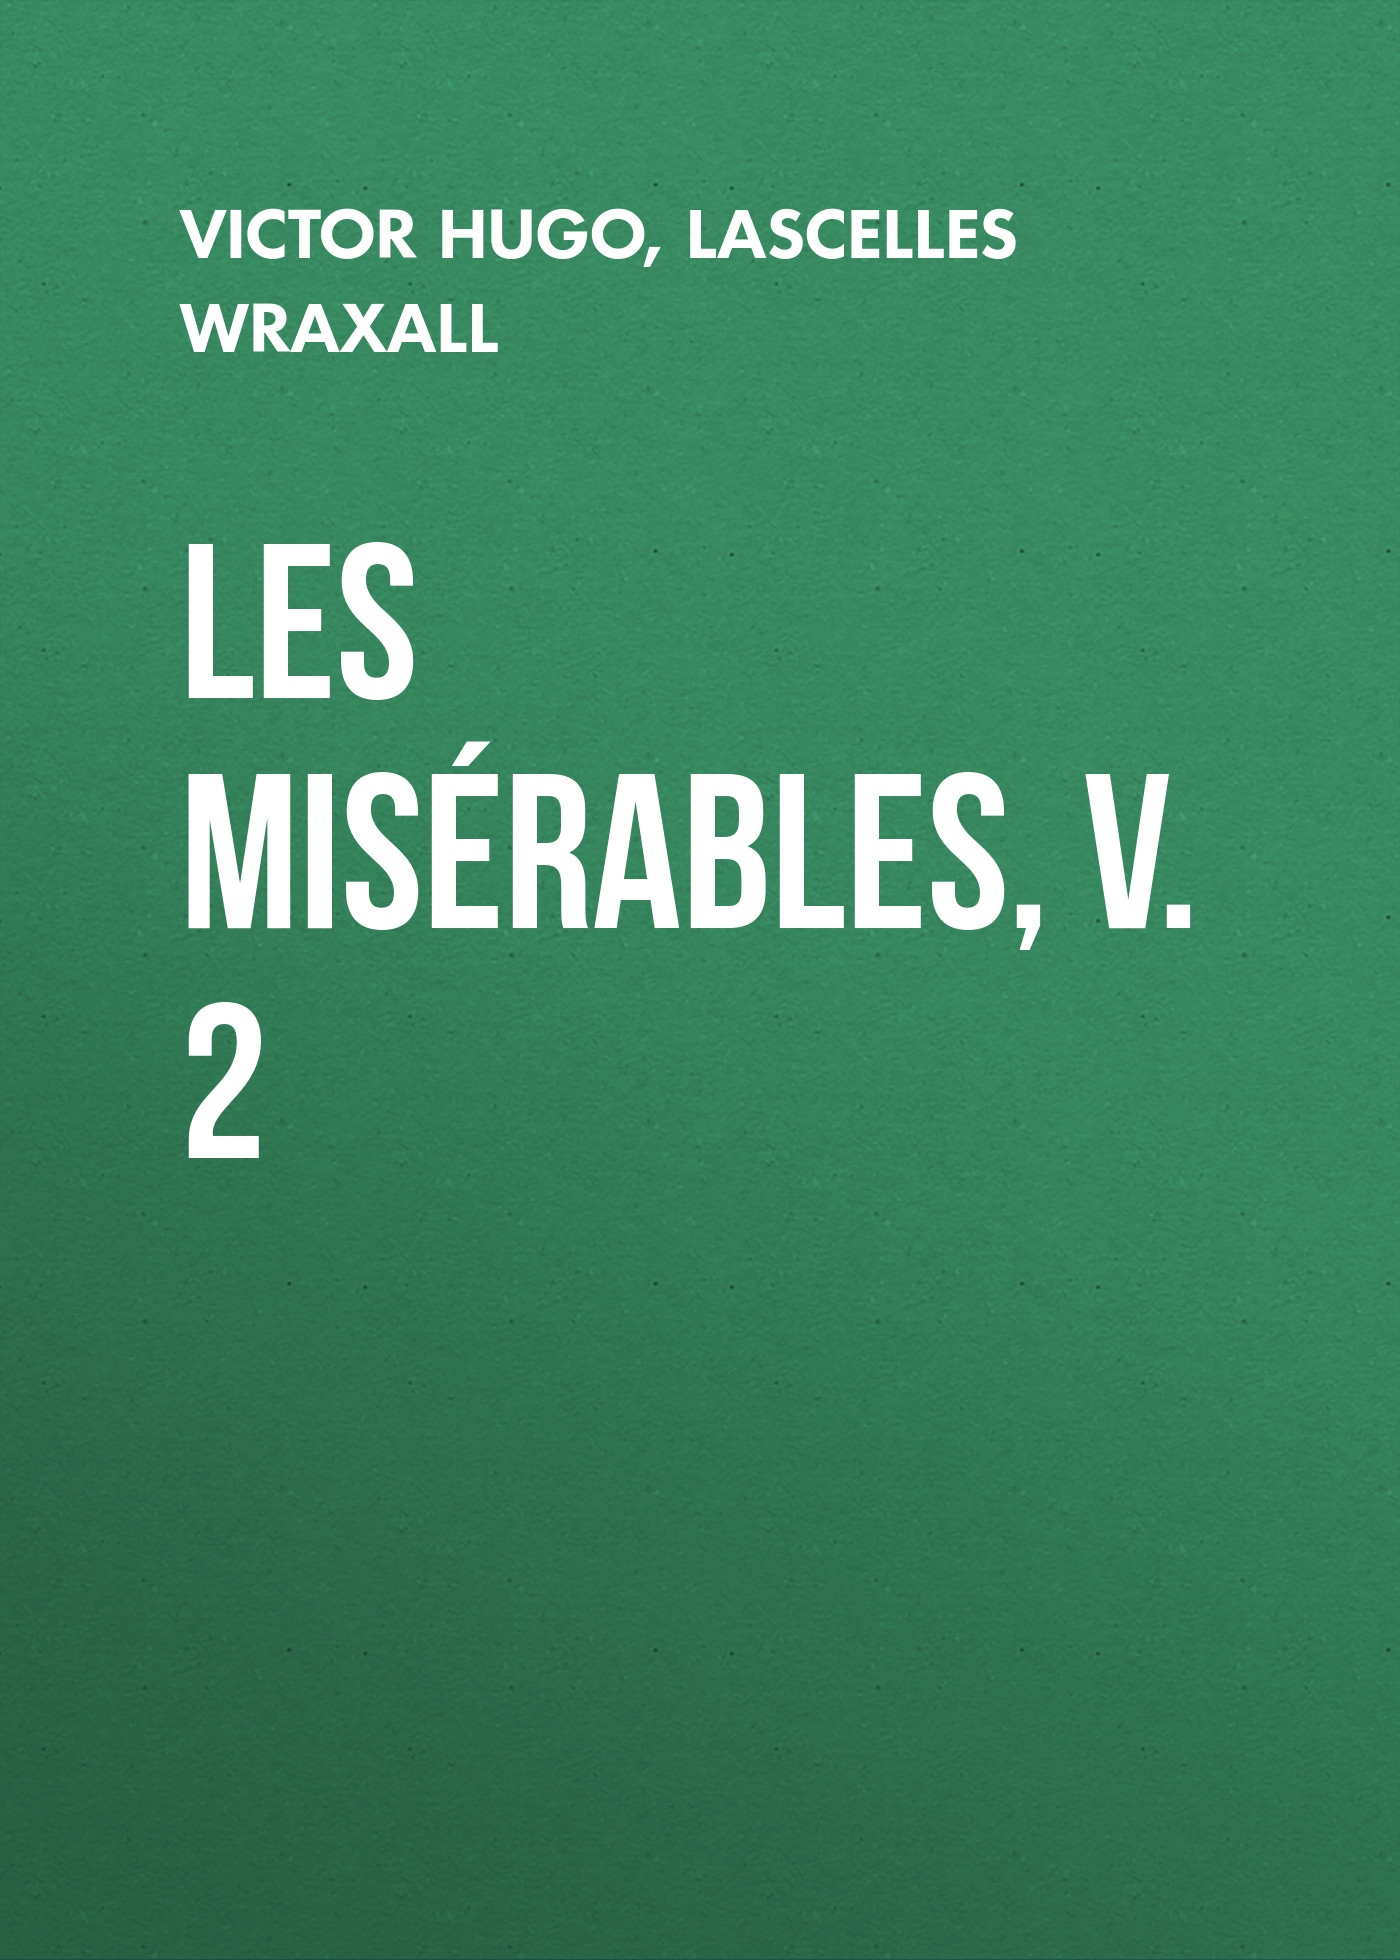 les miserables v 2